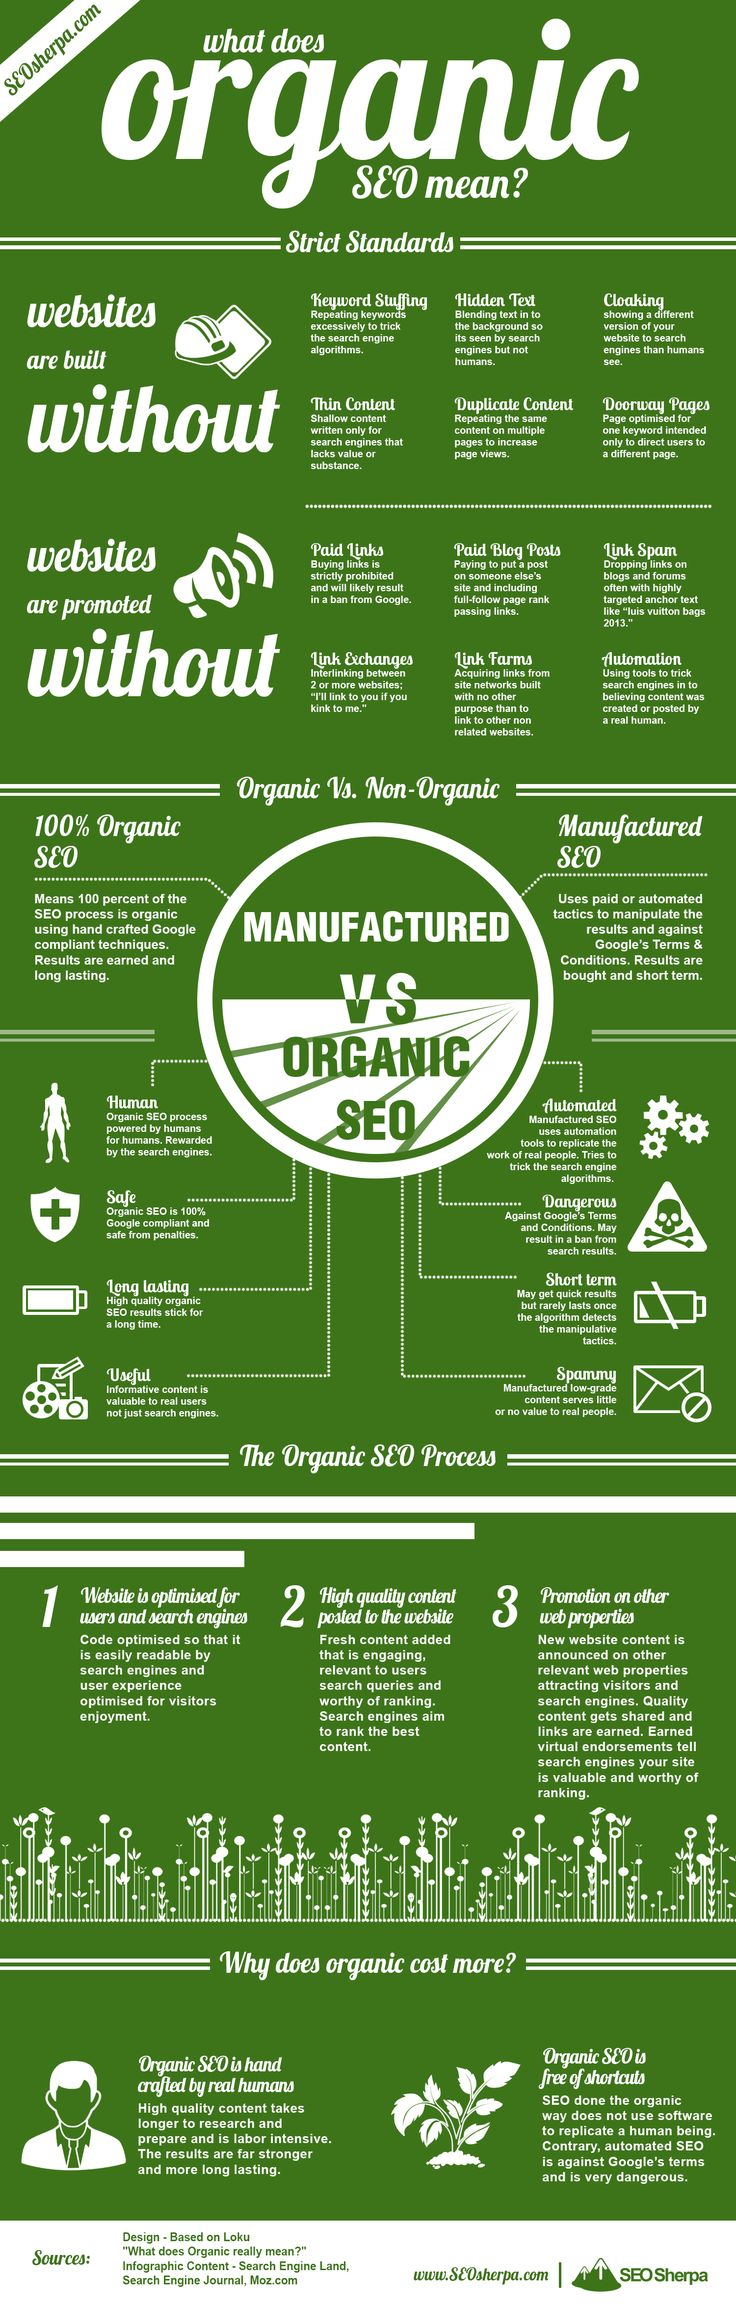 What Does Organic SEO Mean? [Infographic] | Social Media, Digital Marketing, Blogging, Content Marketing, Insights [Group Board] | Pinterest | Seo, Search engi…